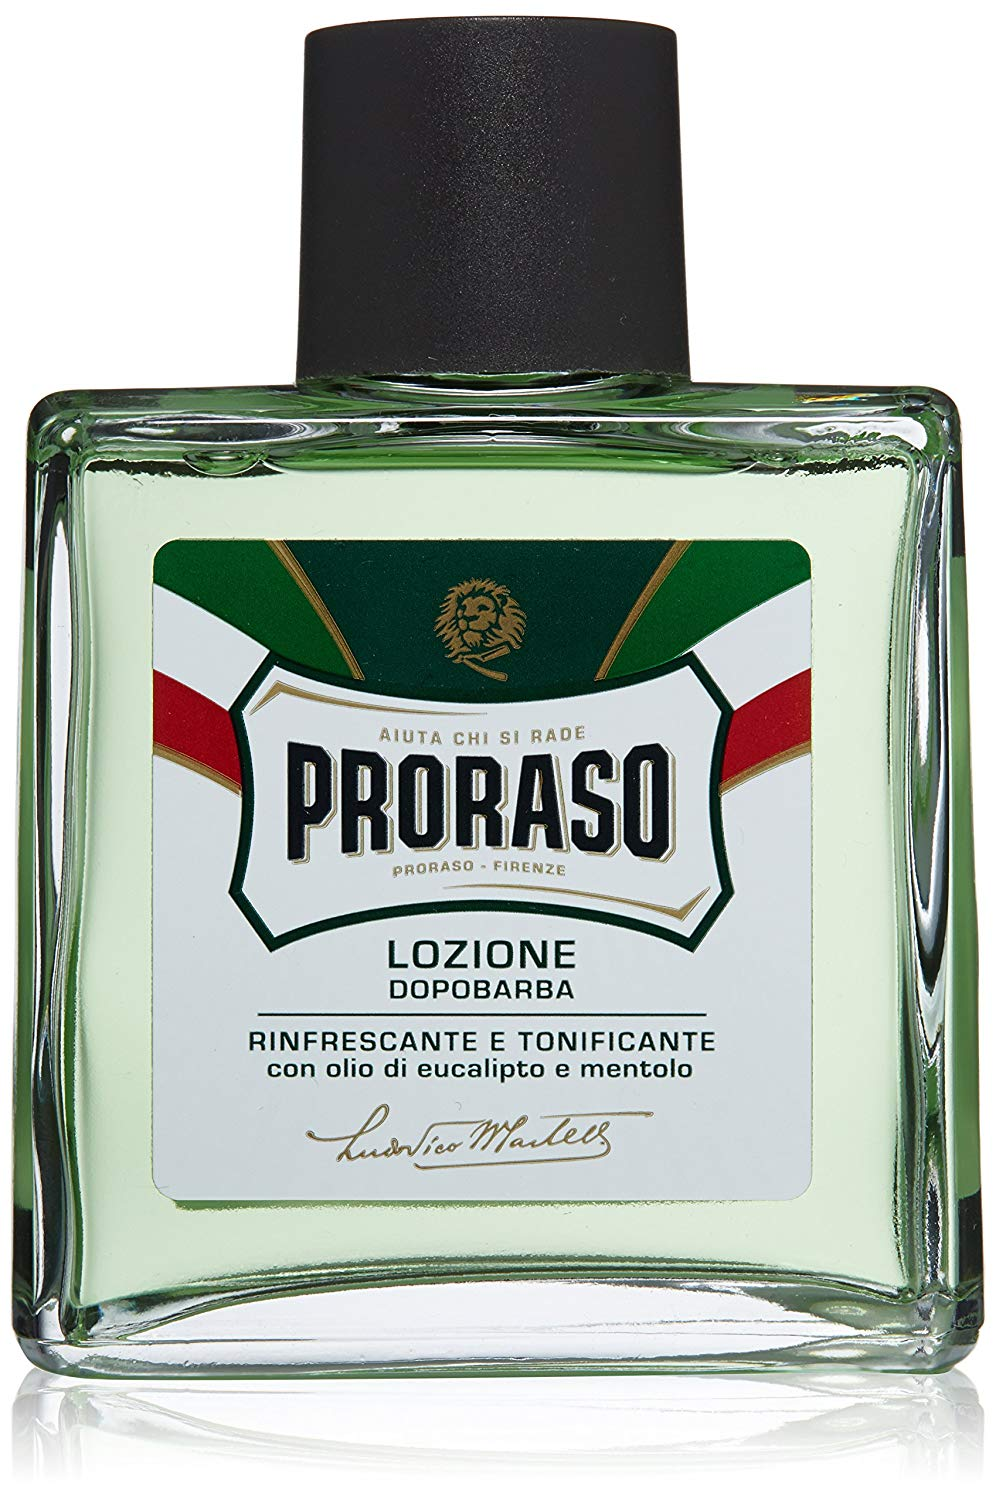 Proraso aftershave